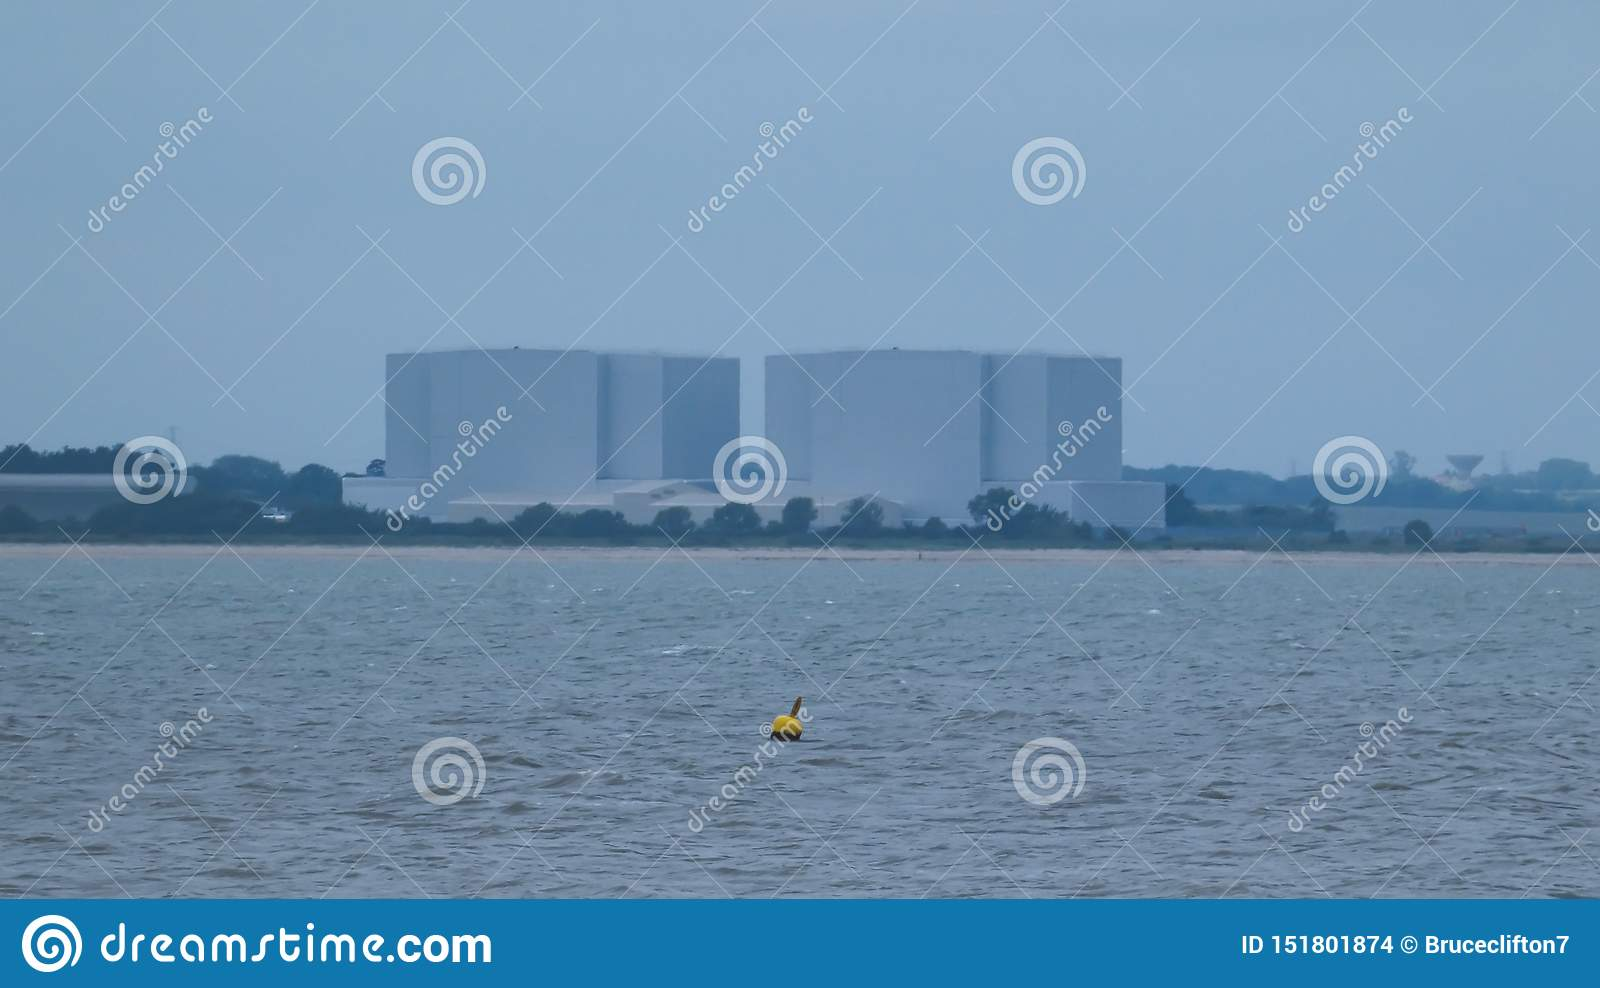 Buoy in front of a nuclear power station in England before the storm